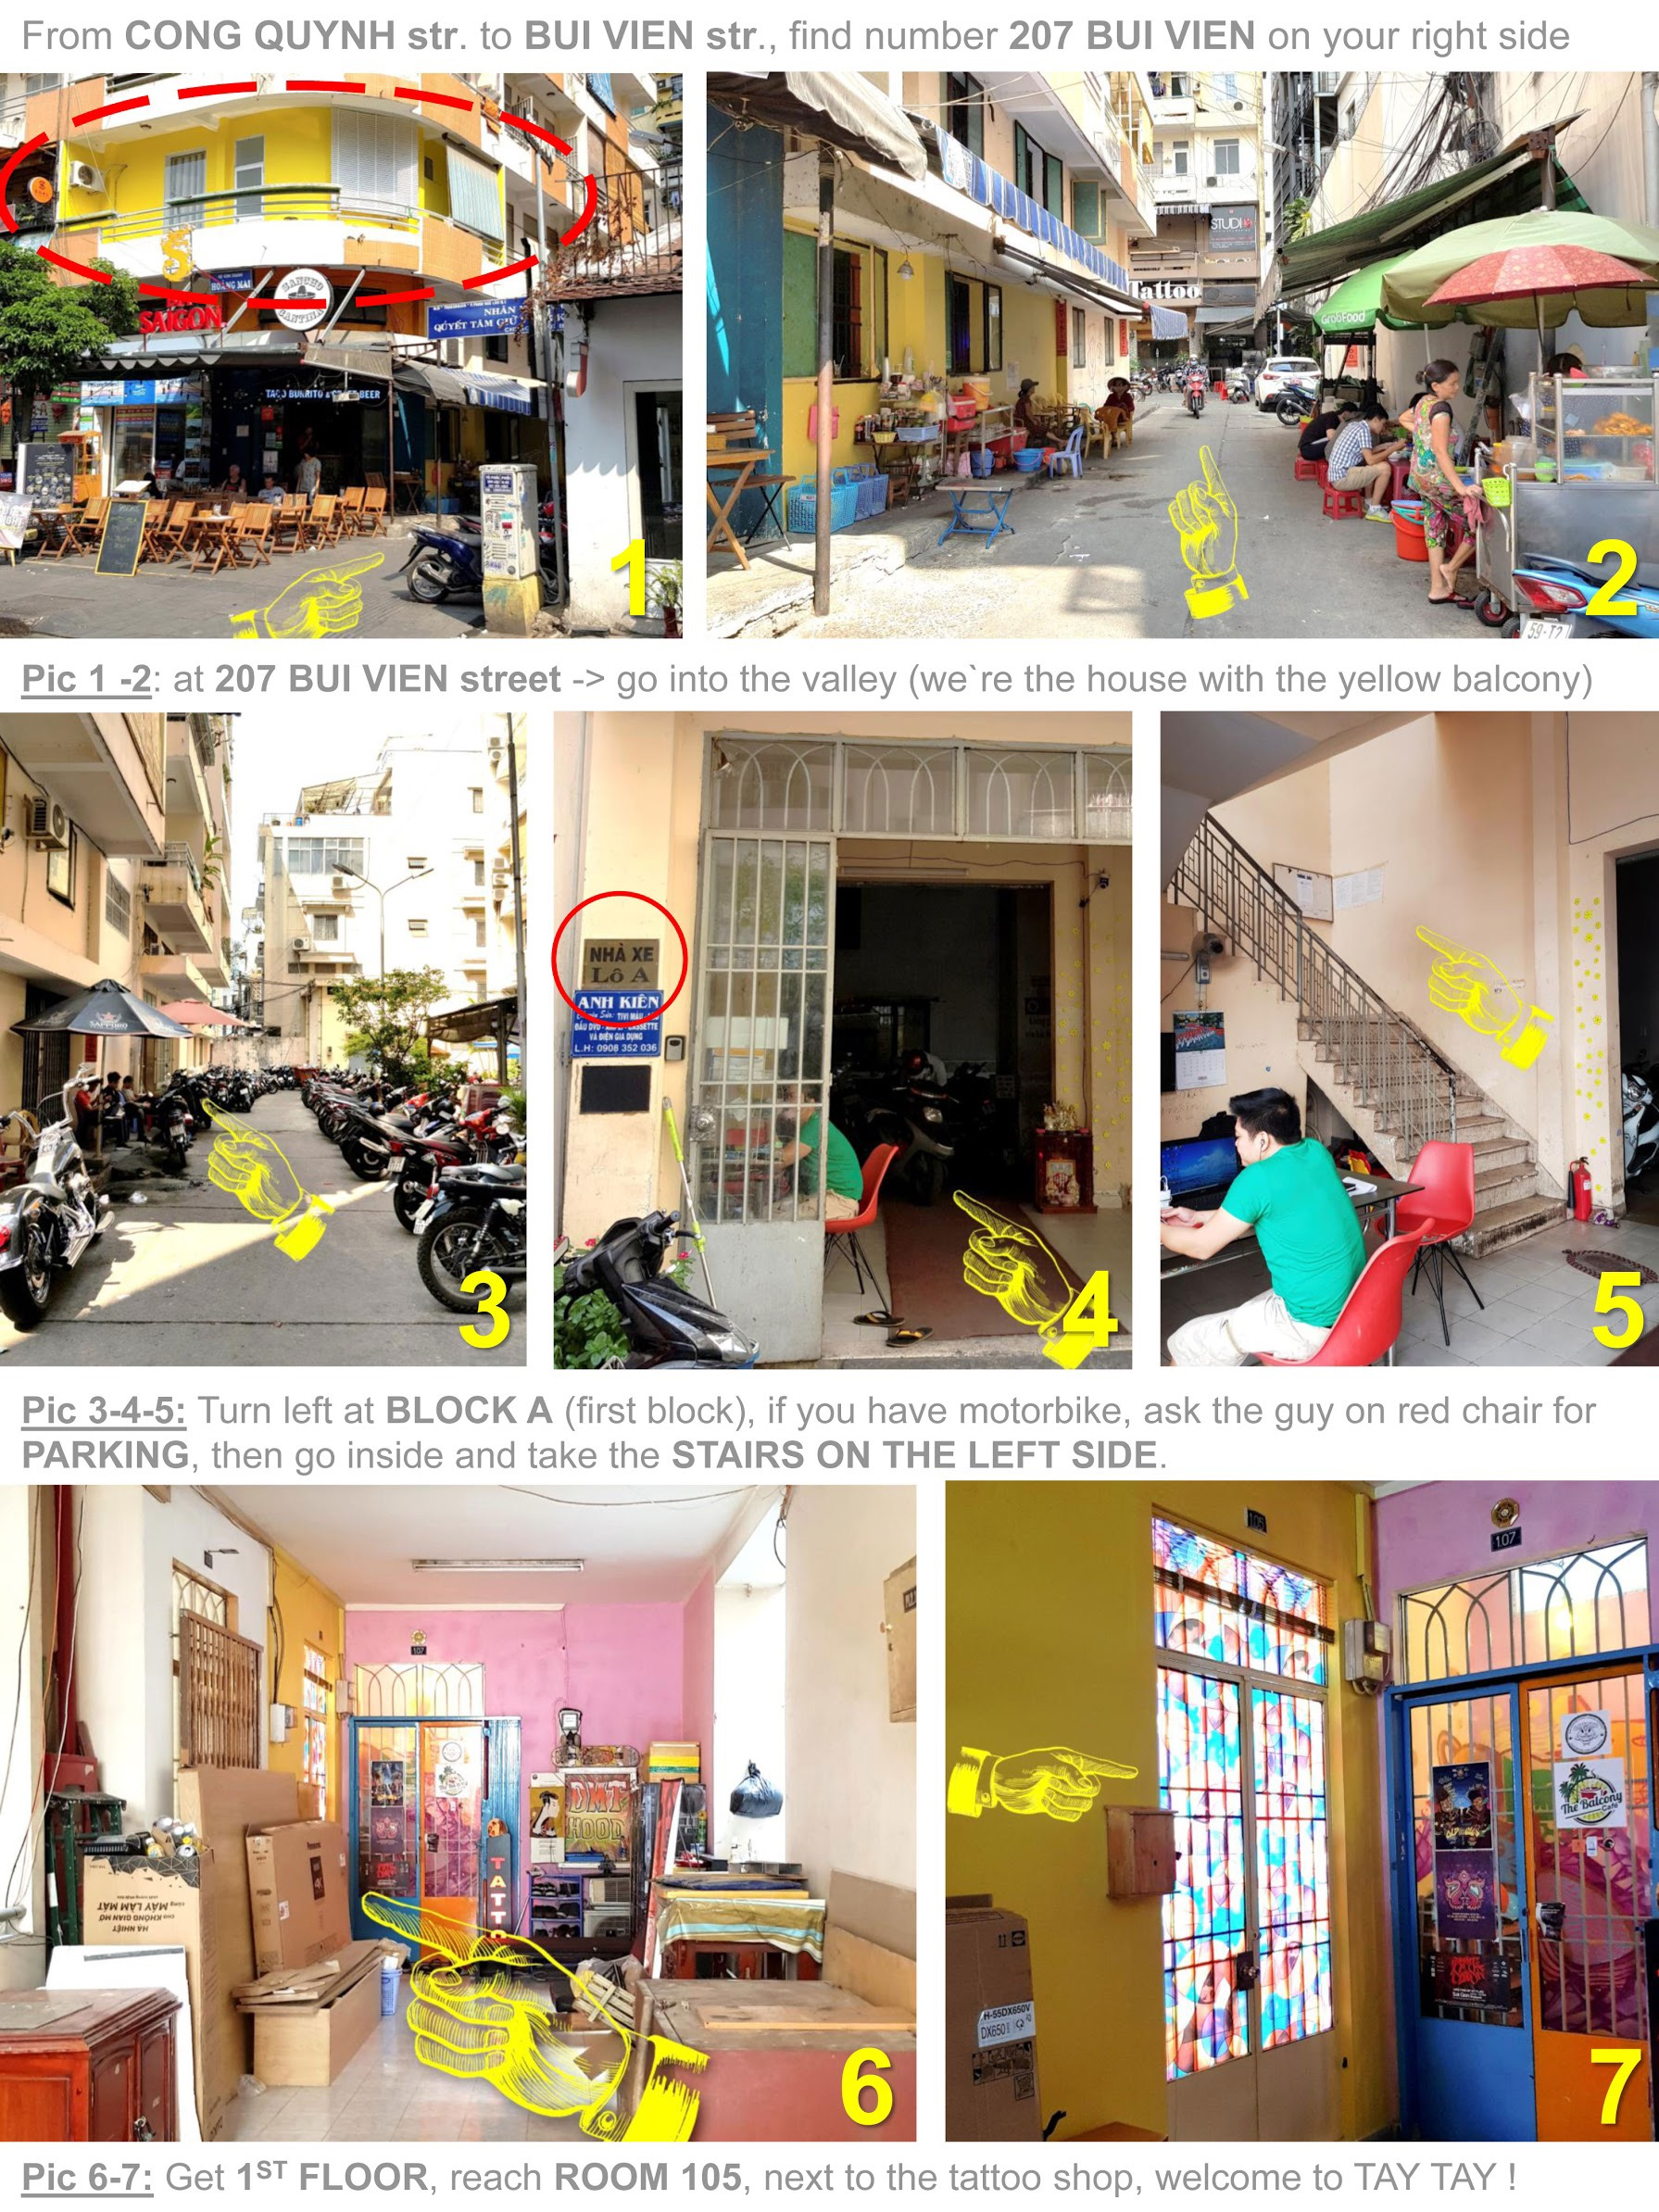 - Inside an old building of Saigon, there is a hidden workshop waiting for you.